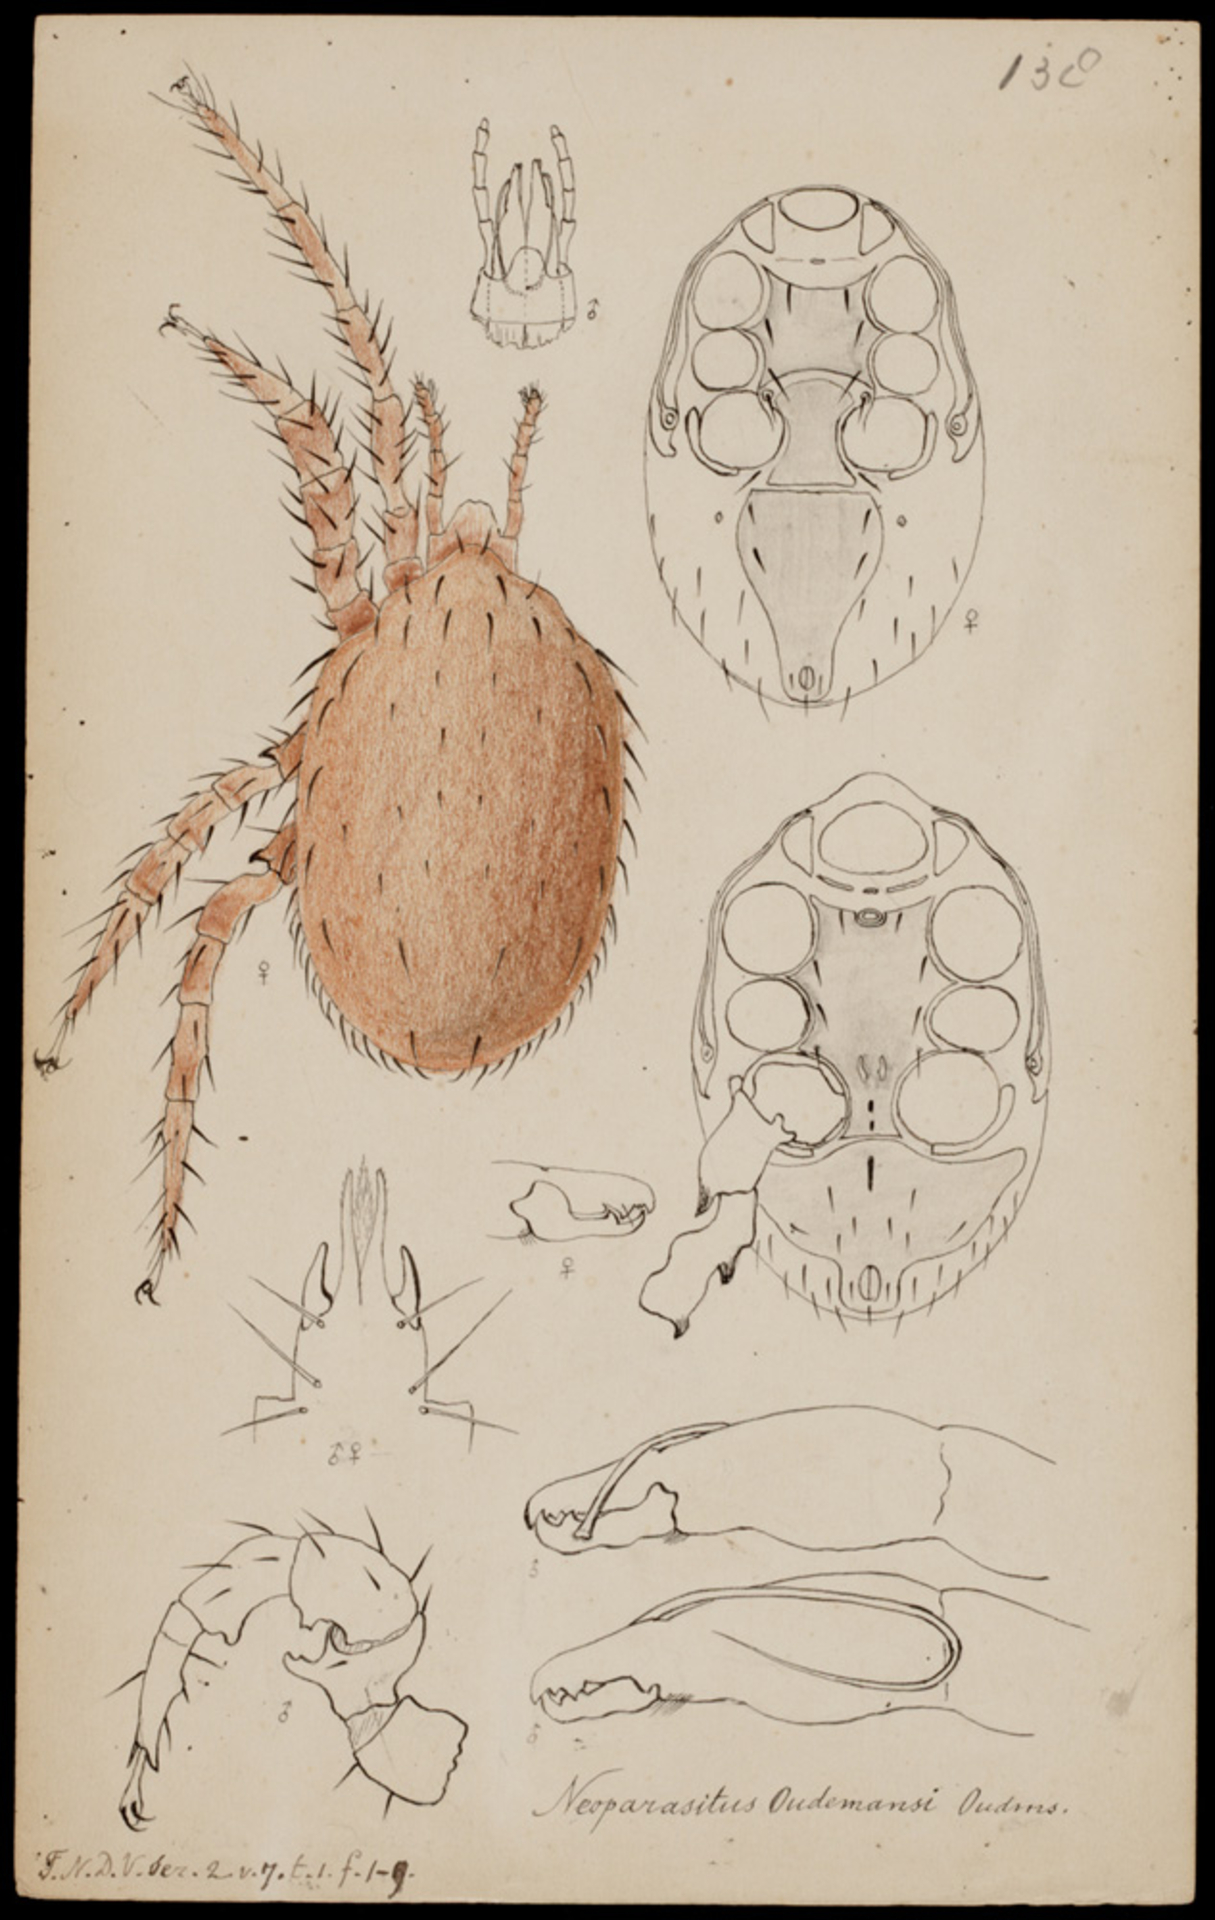 RMNH.ART.1008 | Neoparasitus oudemansi (Oudemans)